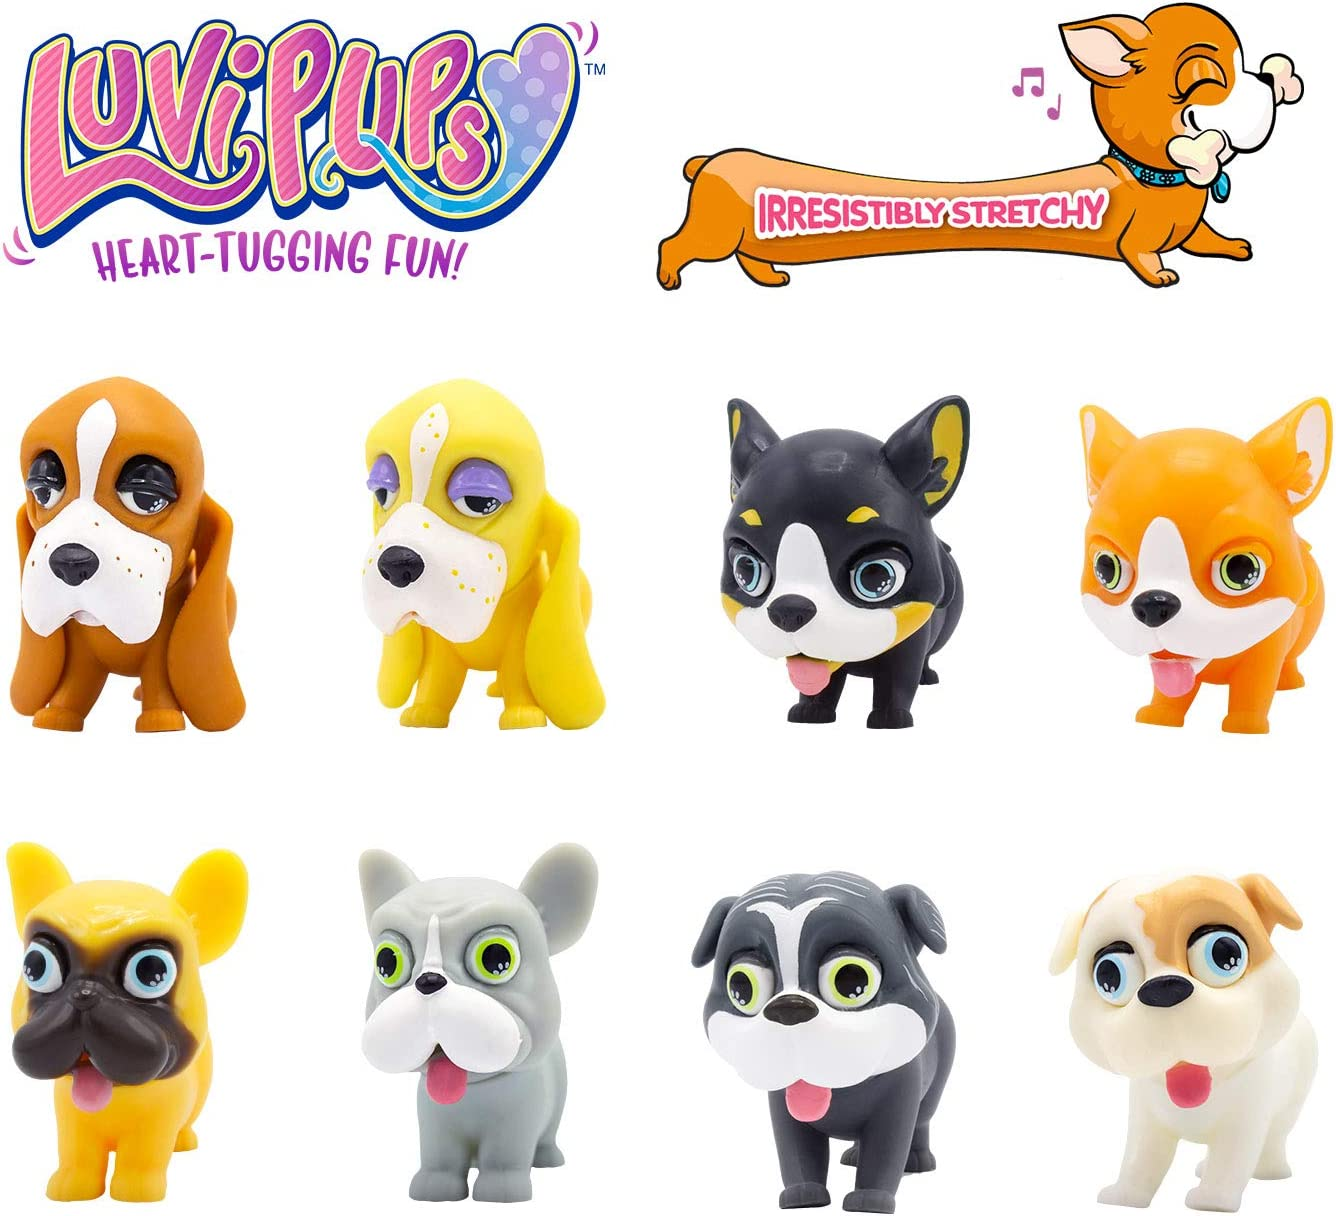 Luvi Pups - an adorable puppy that you can squeeze, tug and collect.